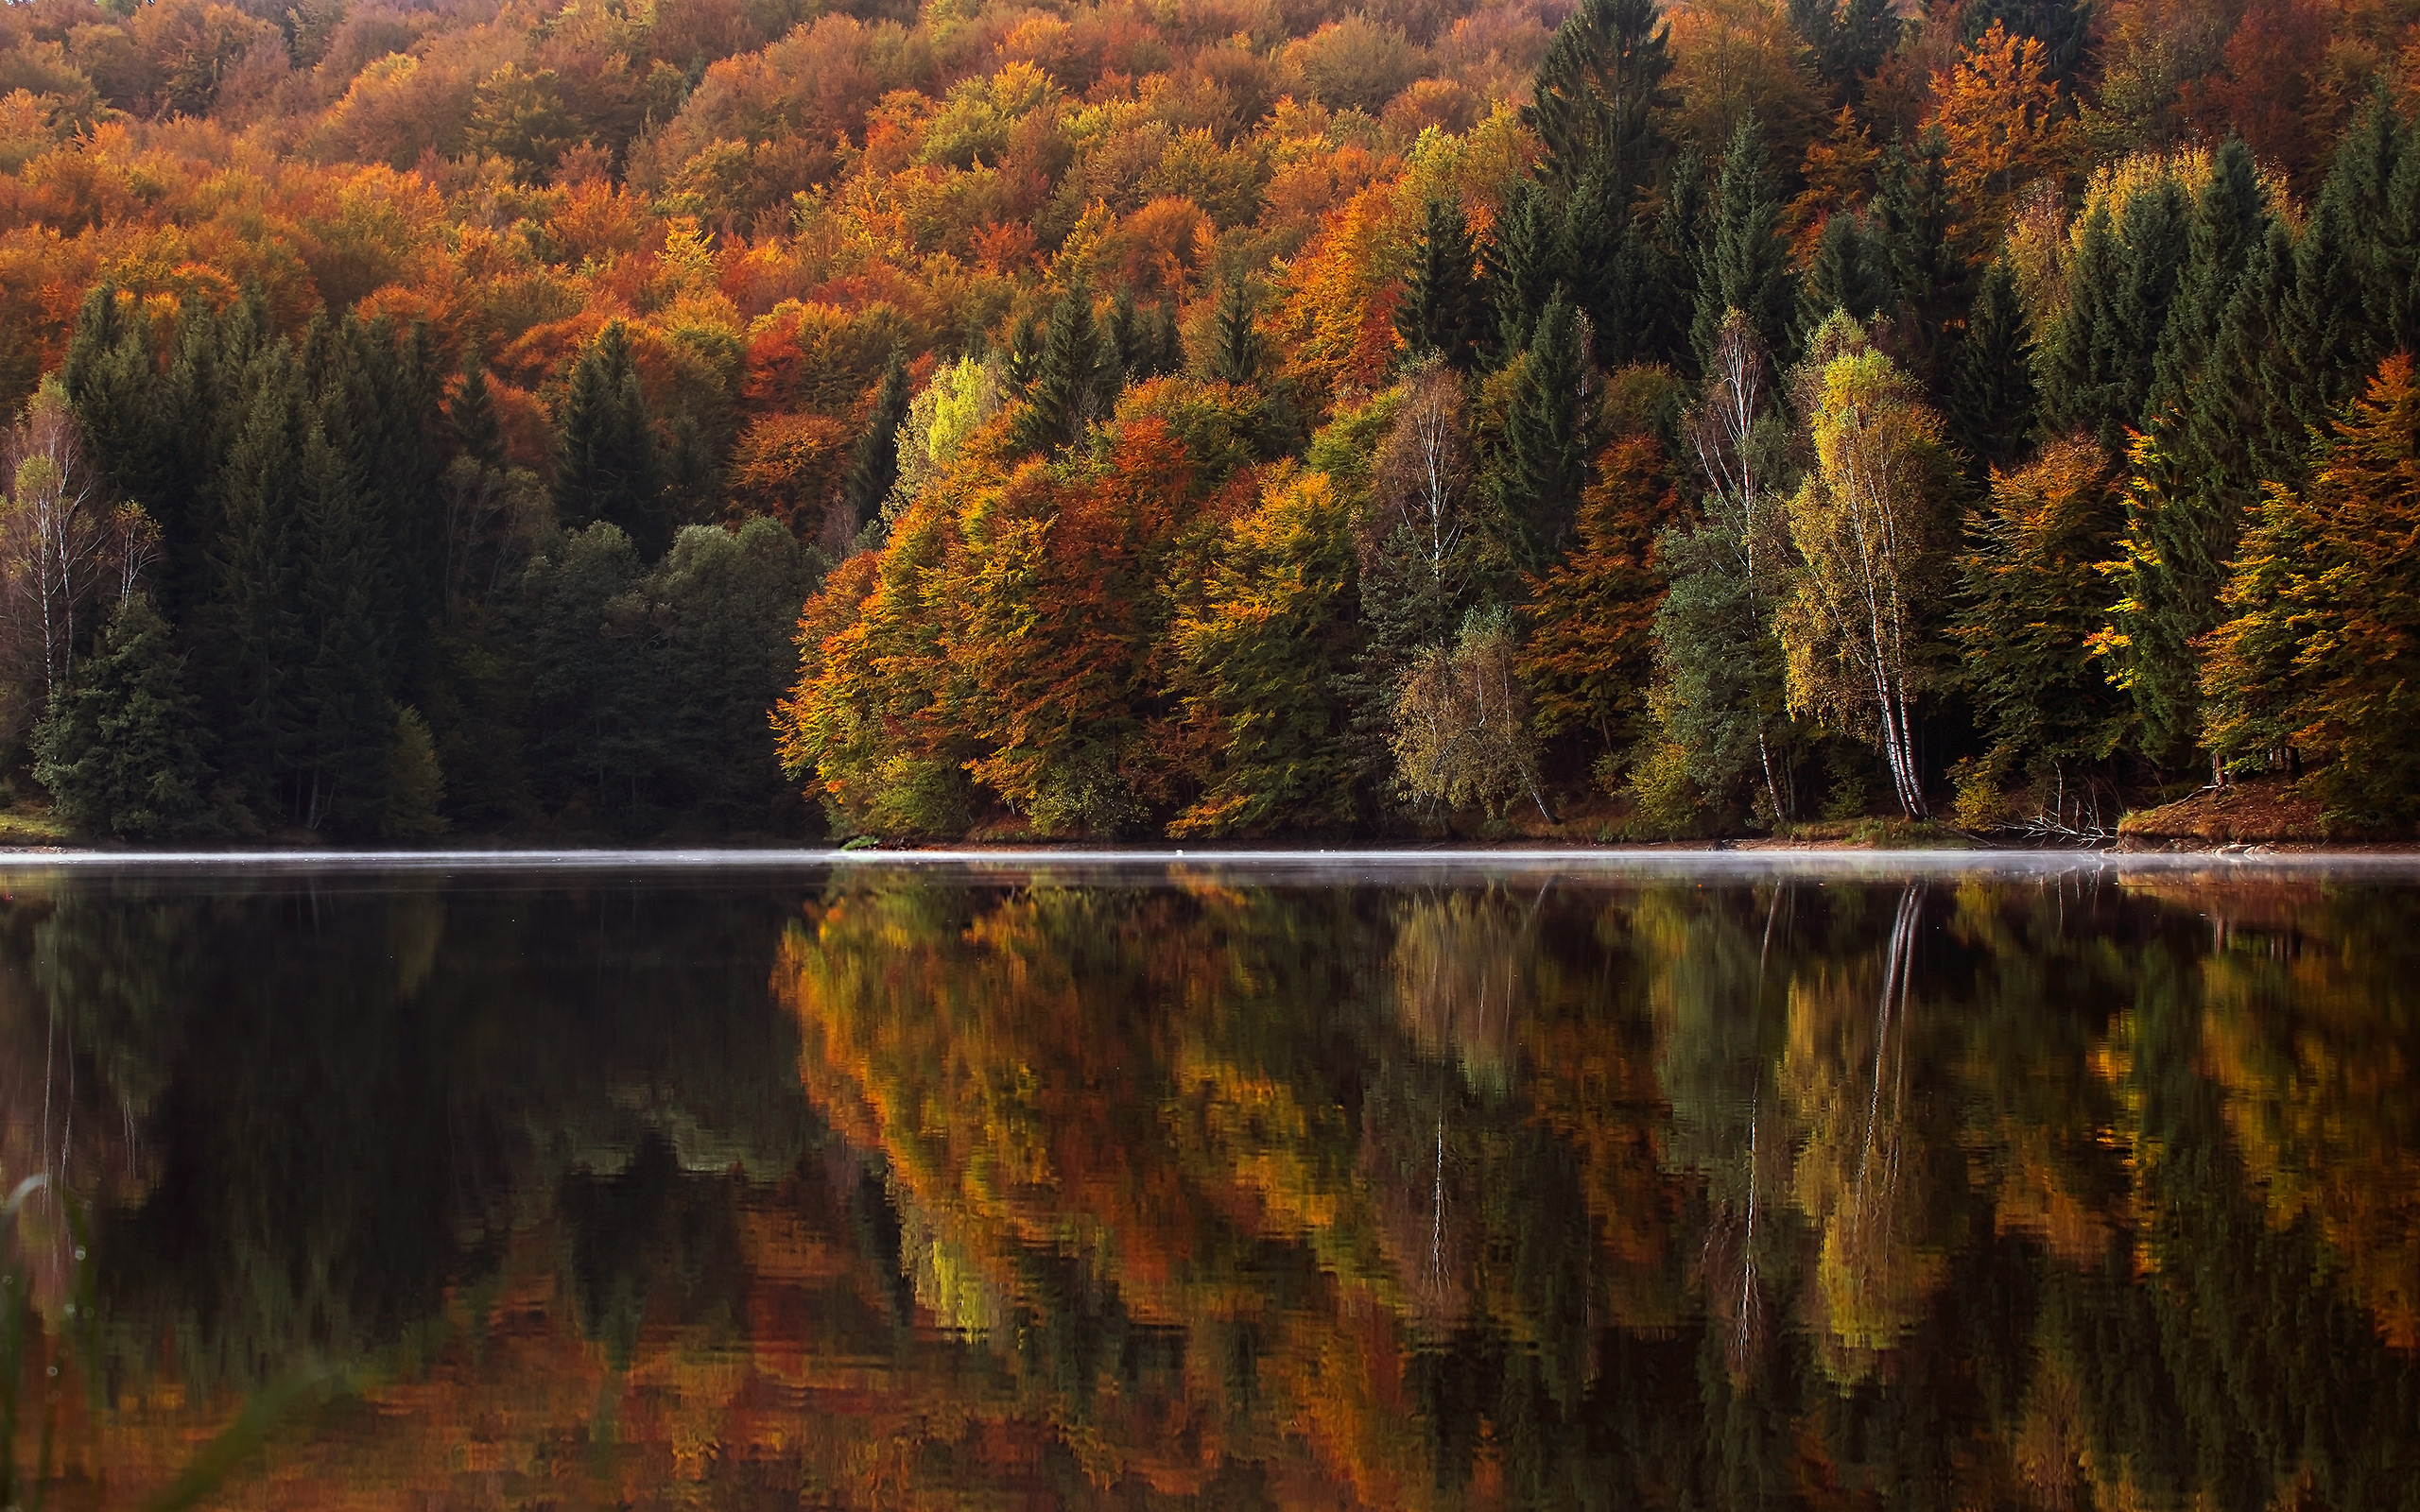 Fall Leaves Wallpaper Windows 7 Daily Wallpaper Autumn In The Mountains I Like To Waste